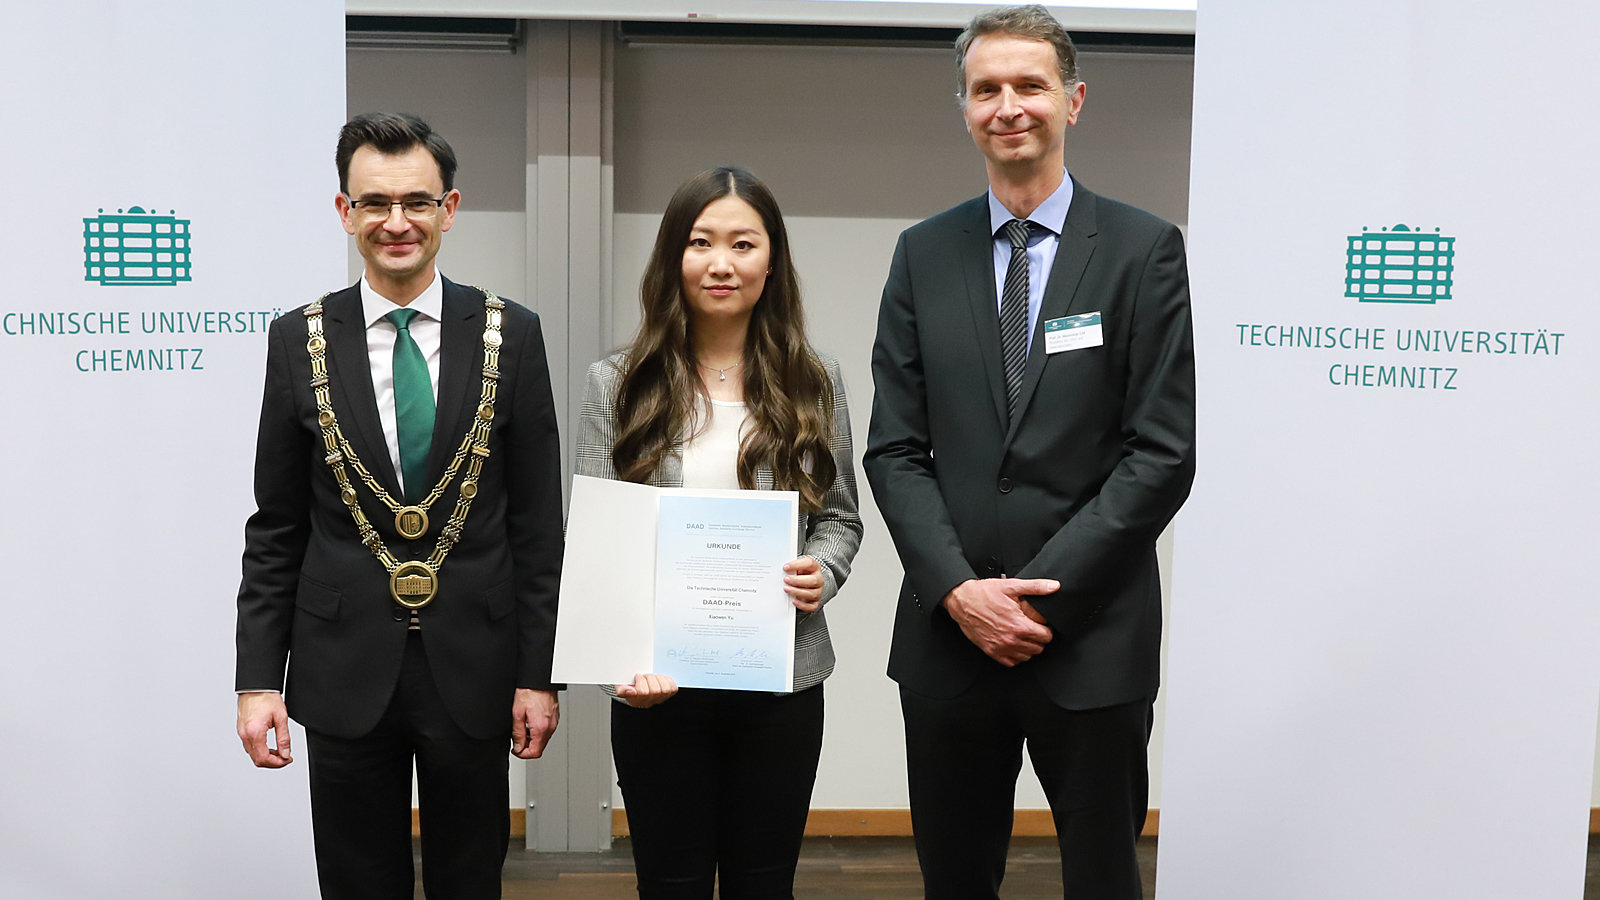 Asian woman stands between two men. She is holding a certificate.